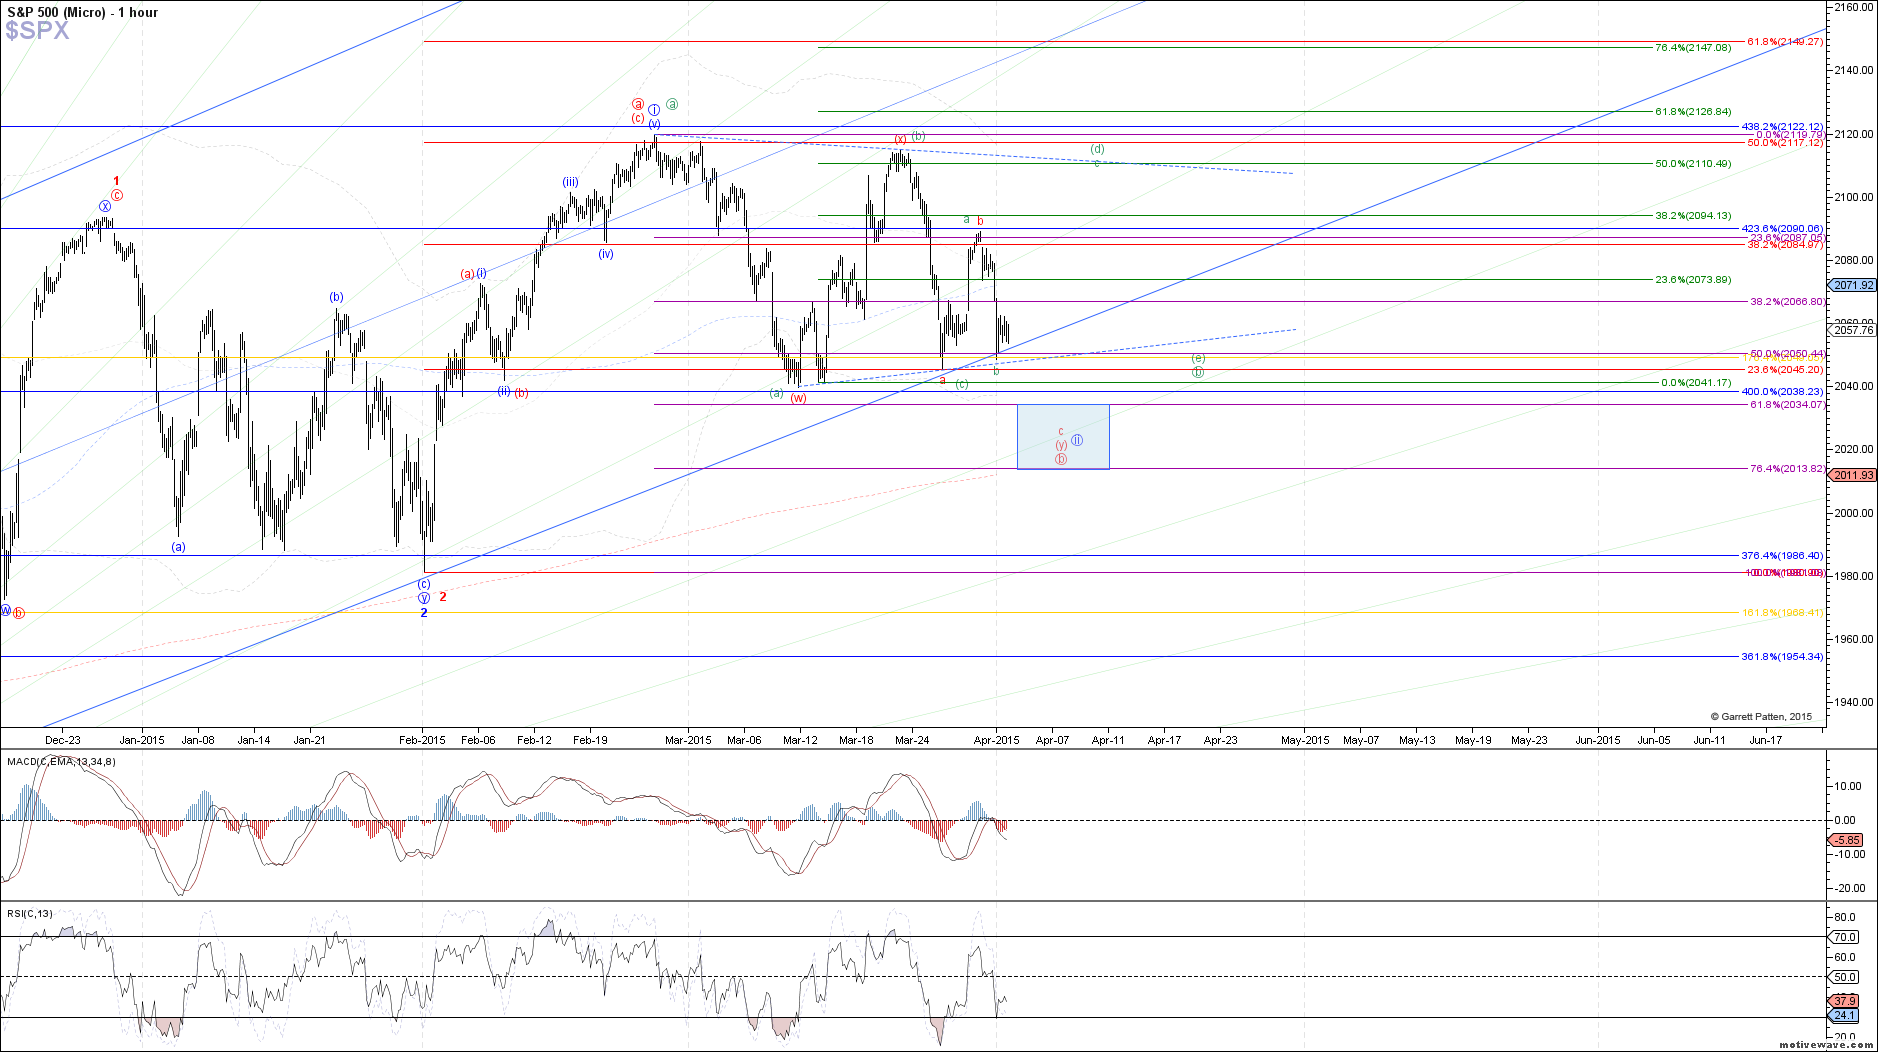 $SPX - Micro - Apr-01 1350 PM (1 hour)